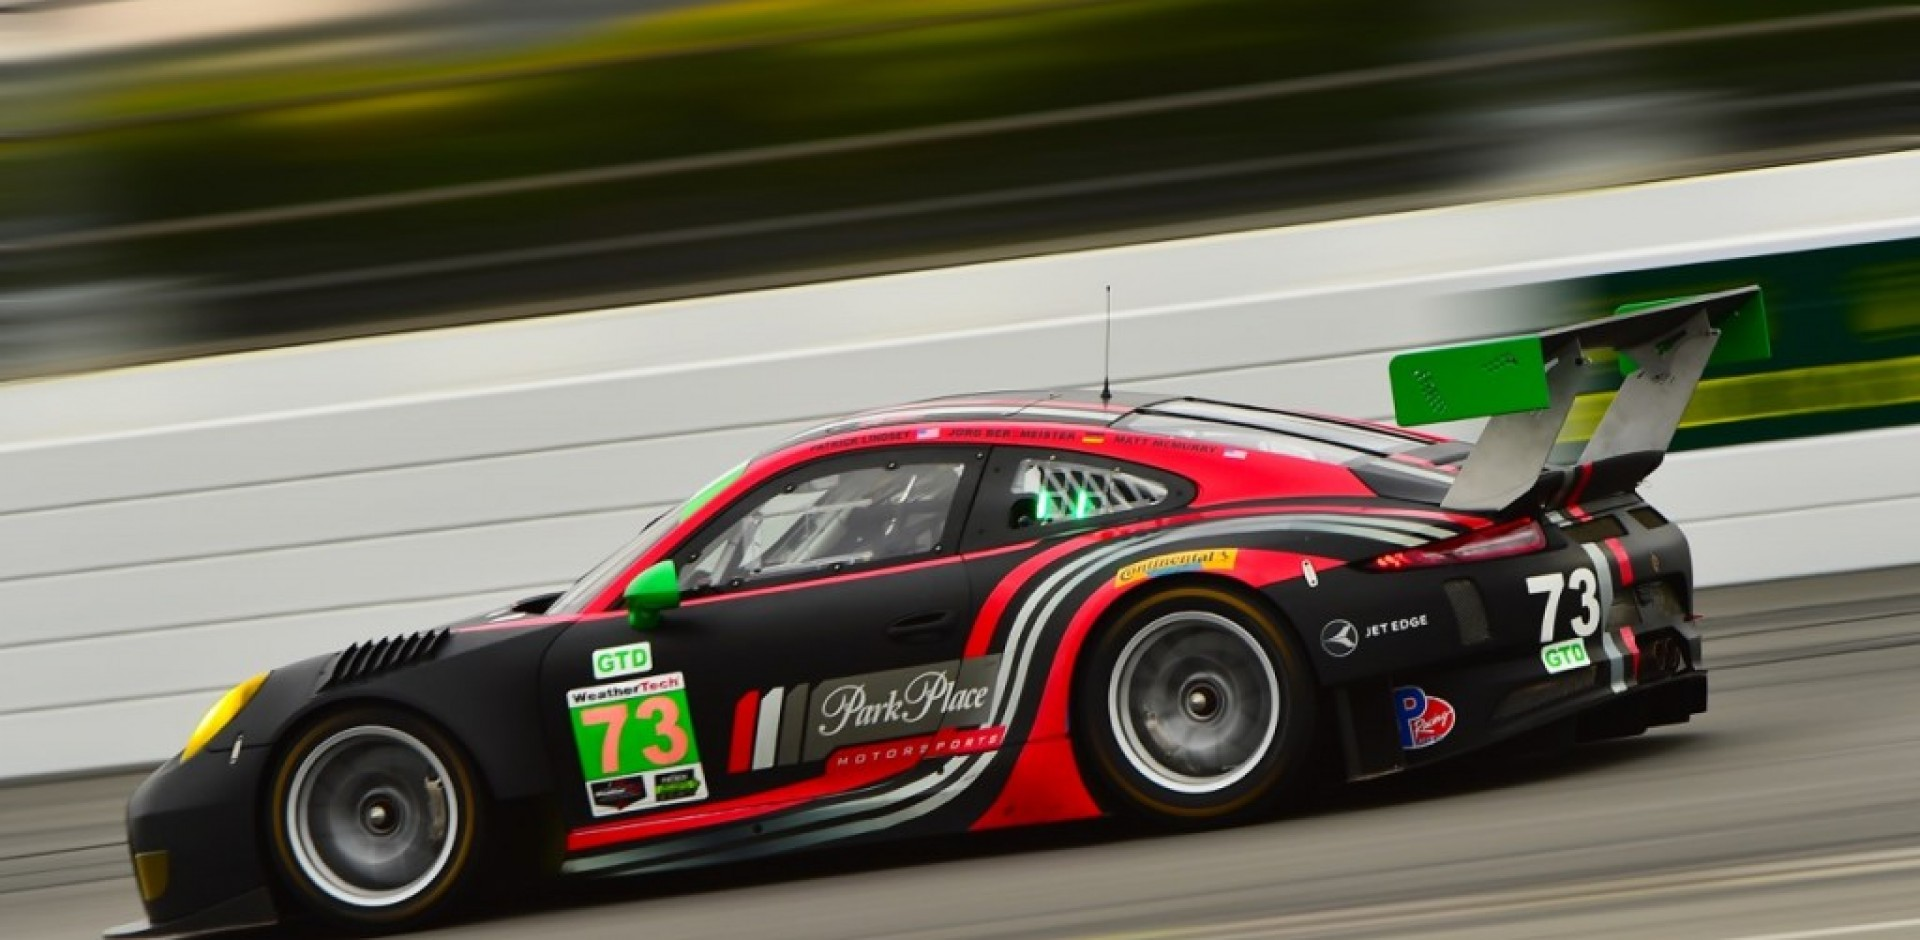 Two 24-hour races for Norbert Siedler in January